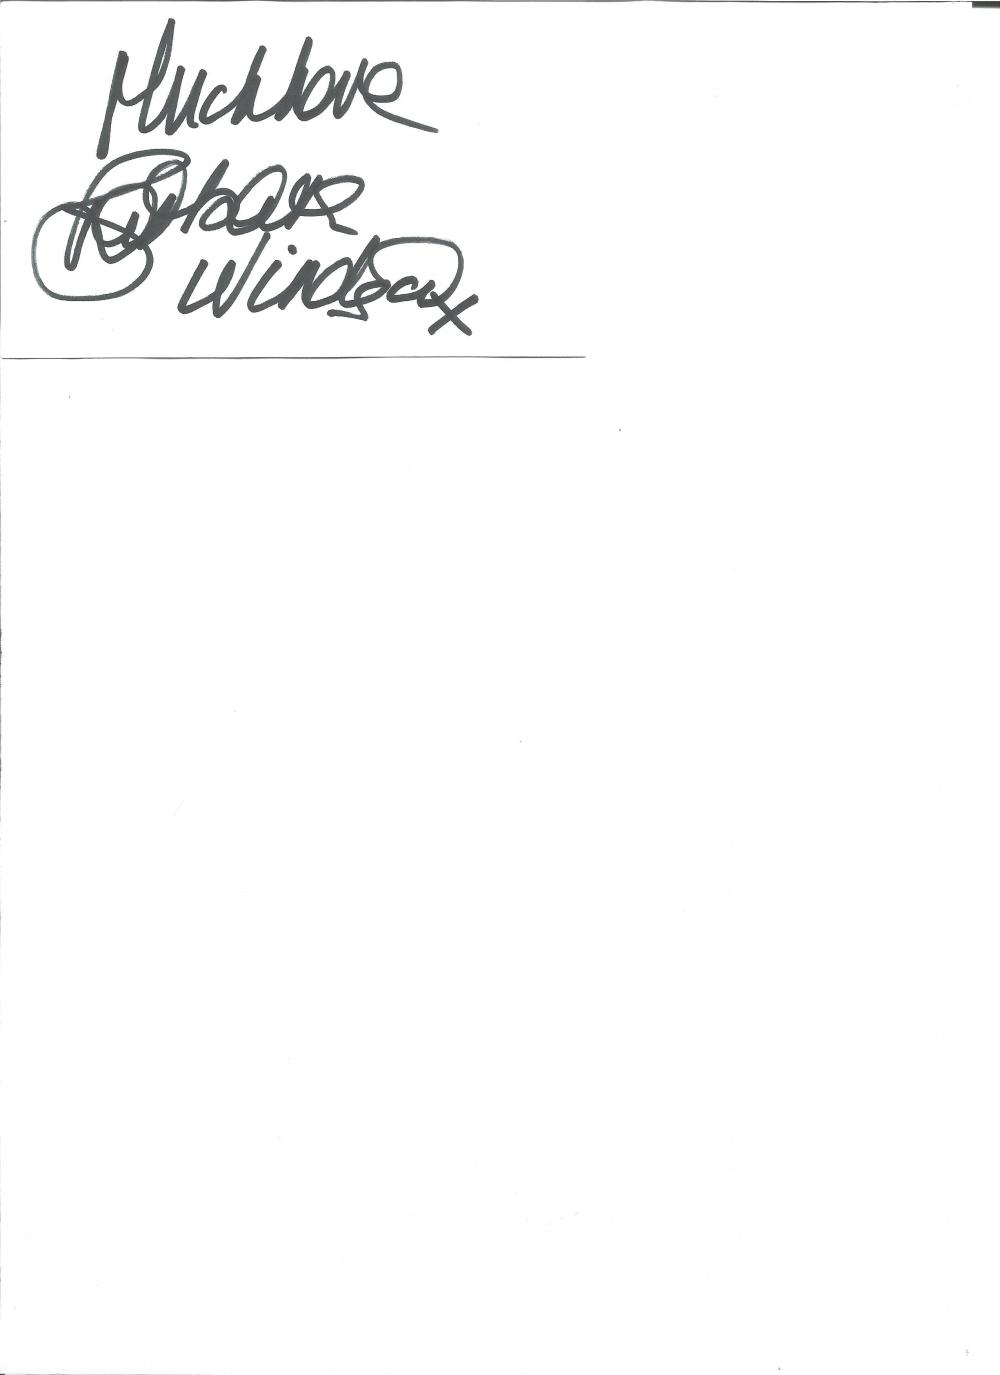 Barbara Windsor signed white card. Good Condition. All signed pieces come with a Certificate of